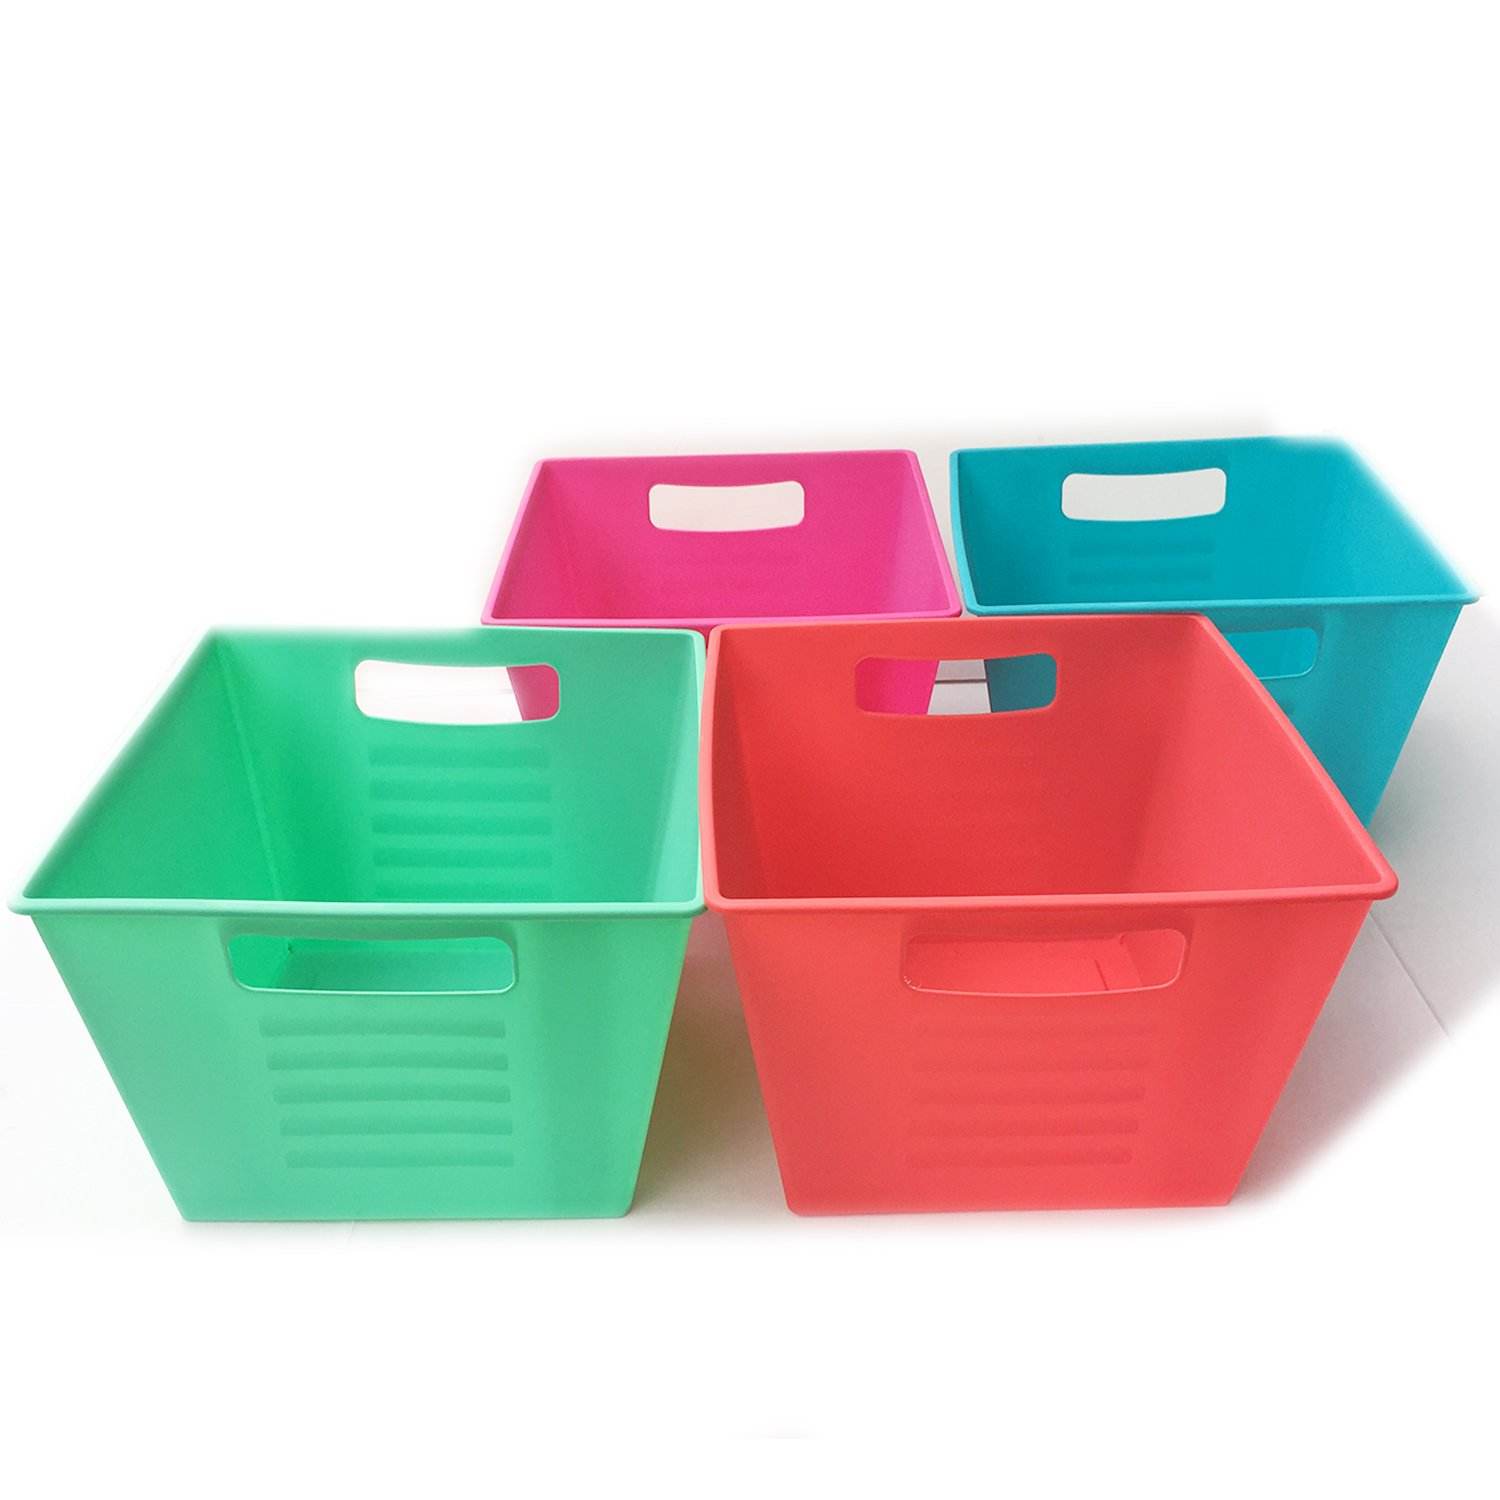 Storage Bins Plastic Containers Colorful Cubes Square Slotted Locker Book Bin Set with Handles Toy Organizer Boxes For Kids, Organizing Container in Bulk 4 Pack 4 Colors Red, Blue, Grey and Green/Teal